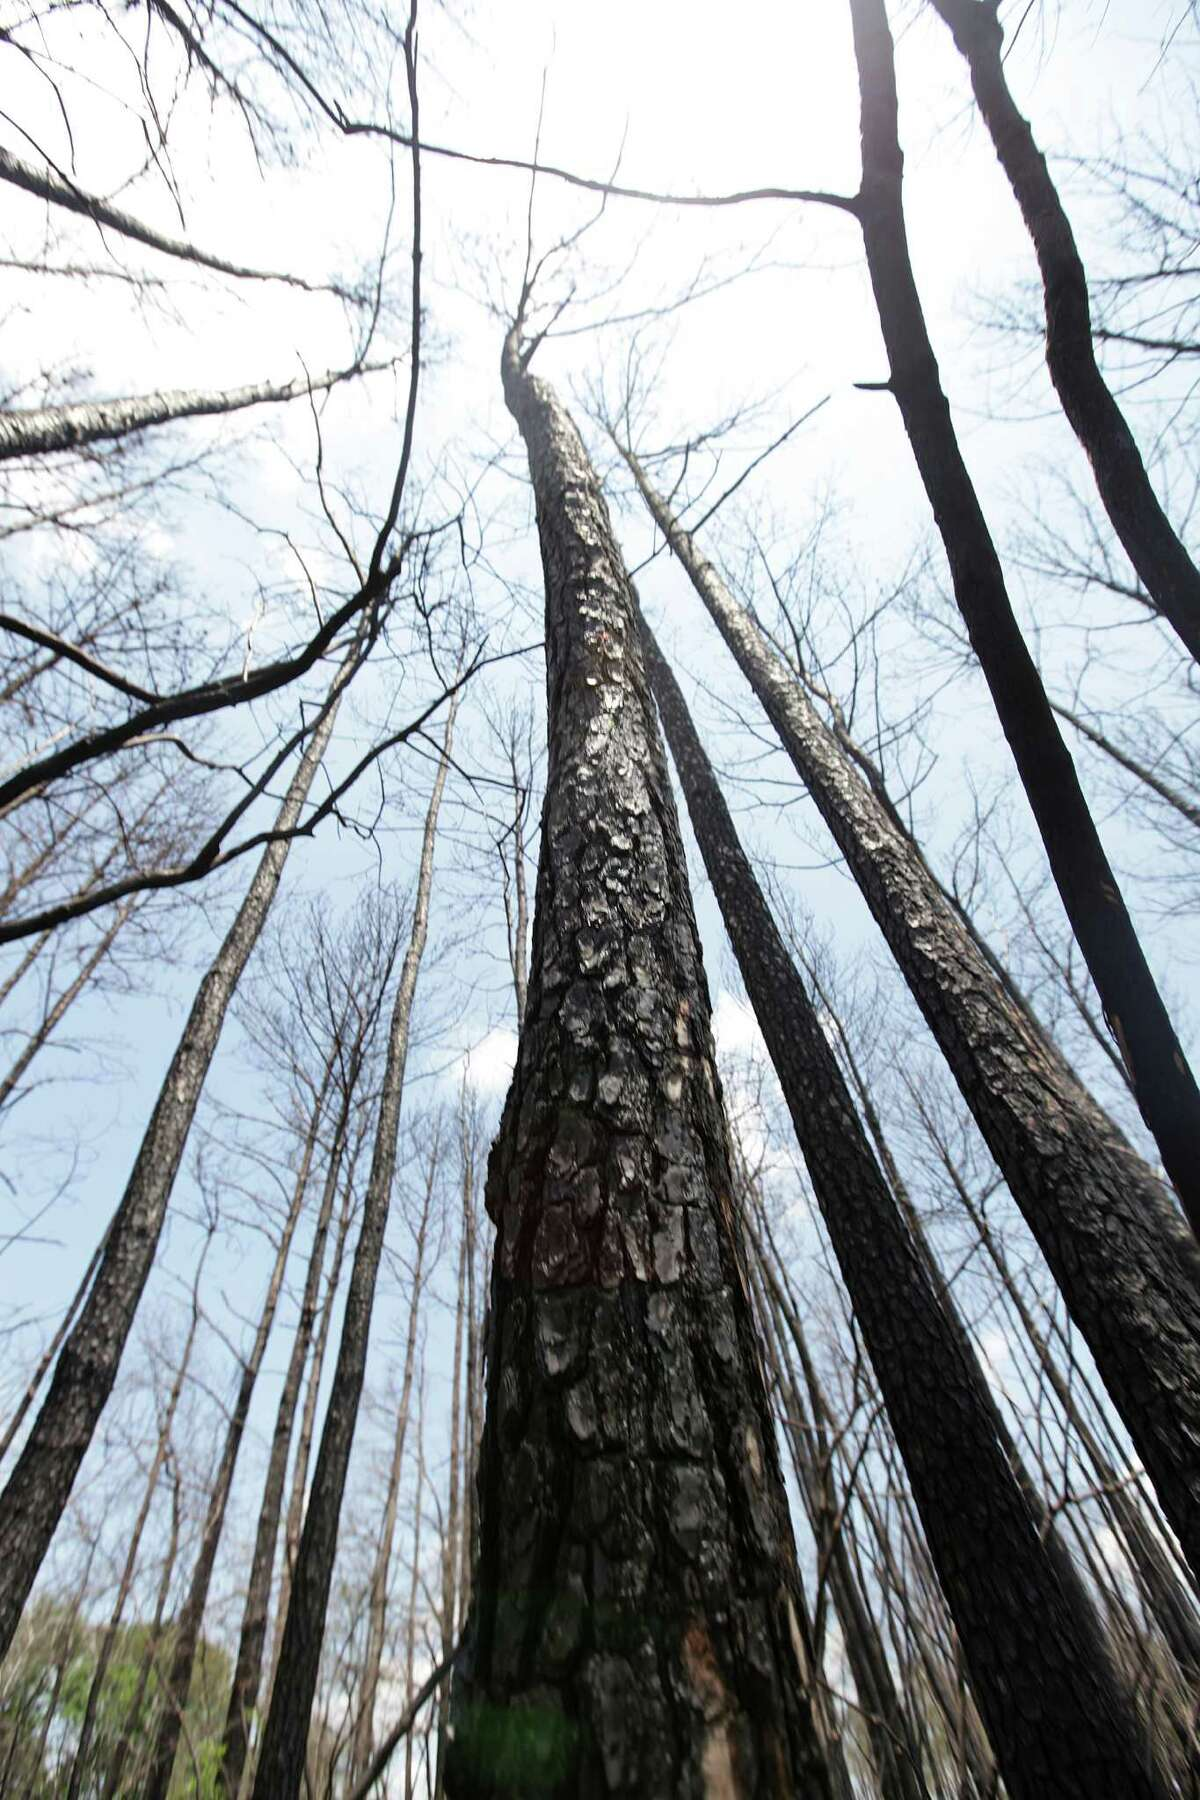 Charred trees loom off Riley Road in Magnolia, where officials fear a repeat of last year's fires.